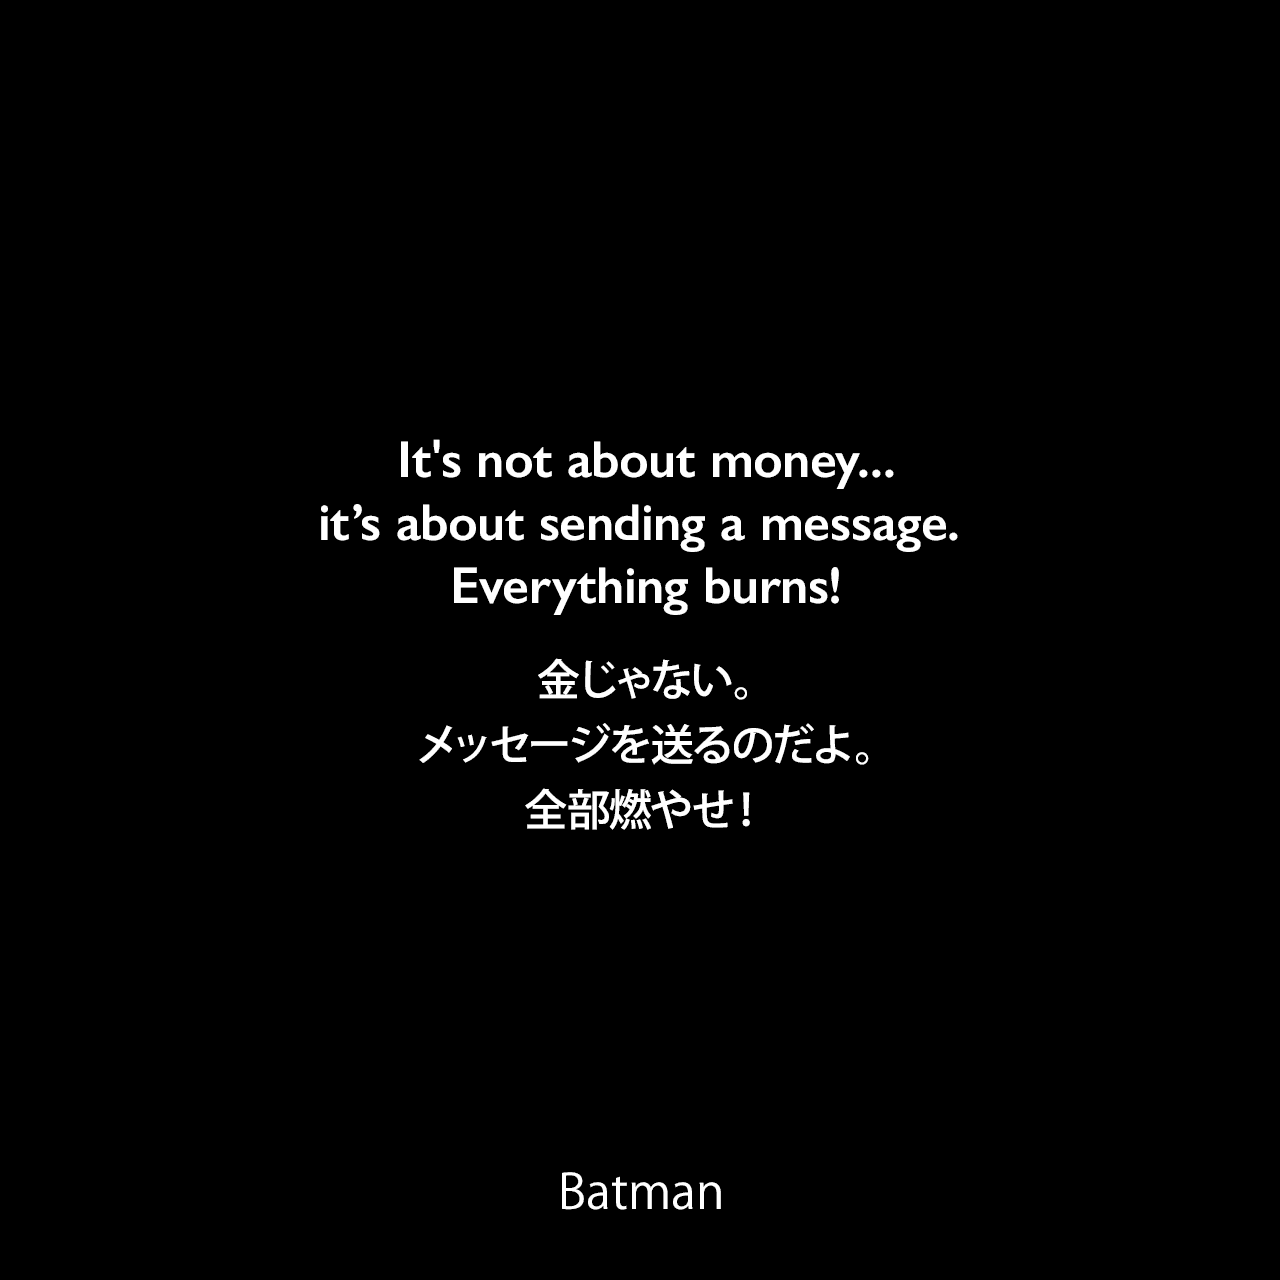 It's not about money...it's about sending a message. Everything burns!金じゃない。メッセージを送るのだよ。全部燃やせ!- Jorker